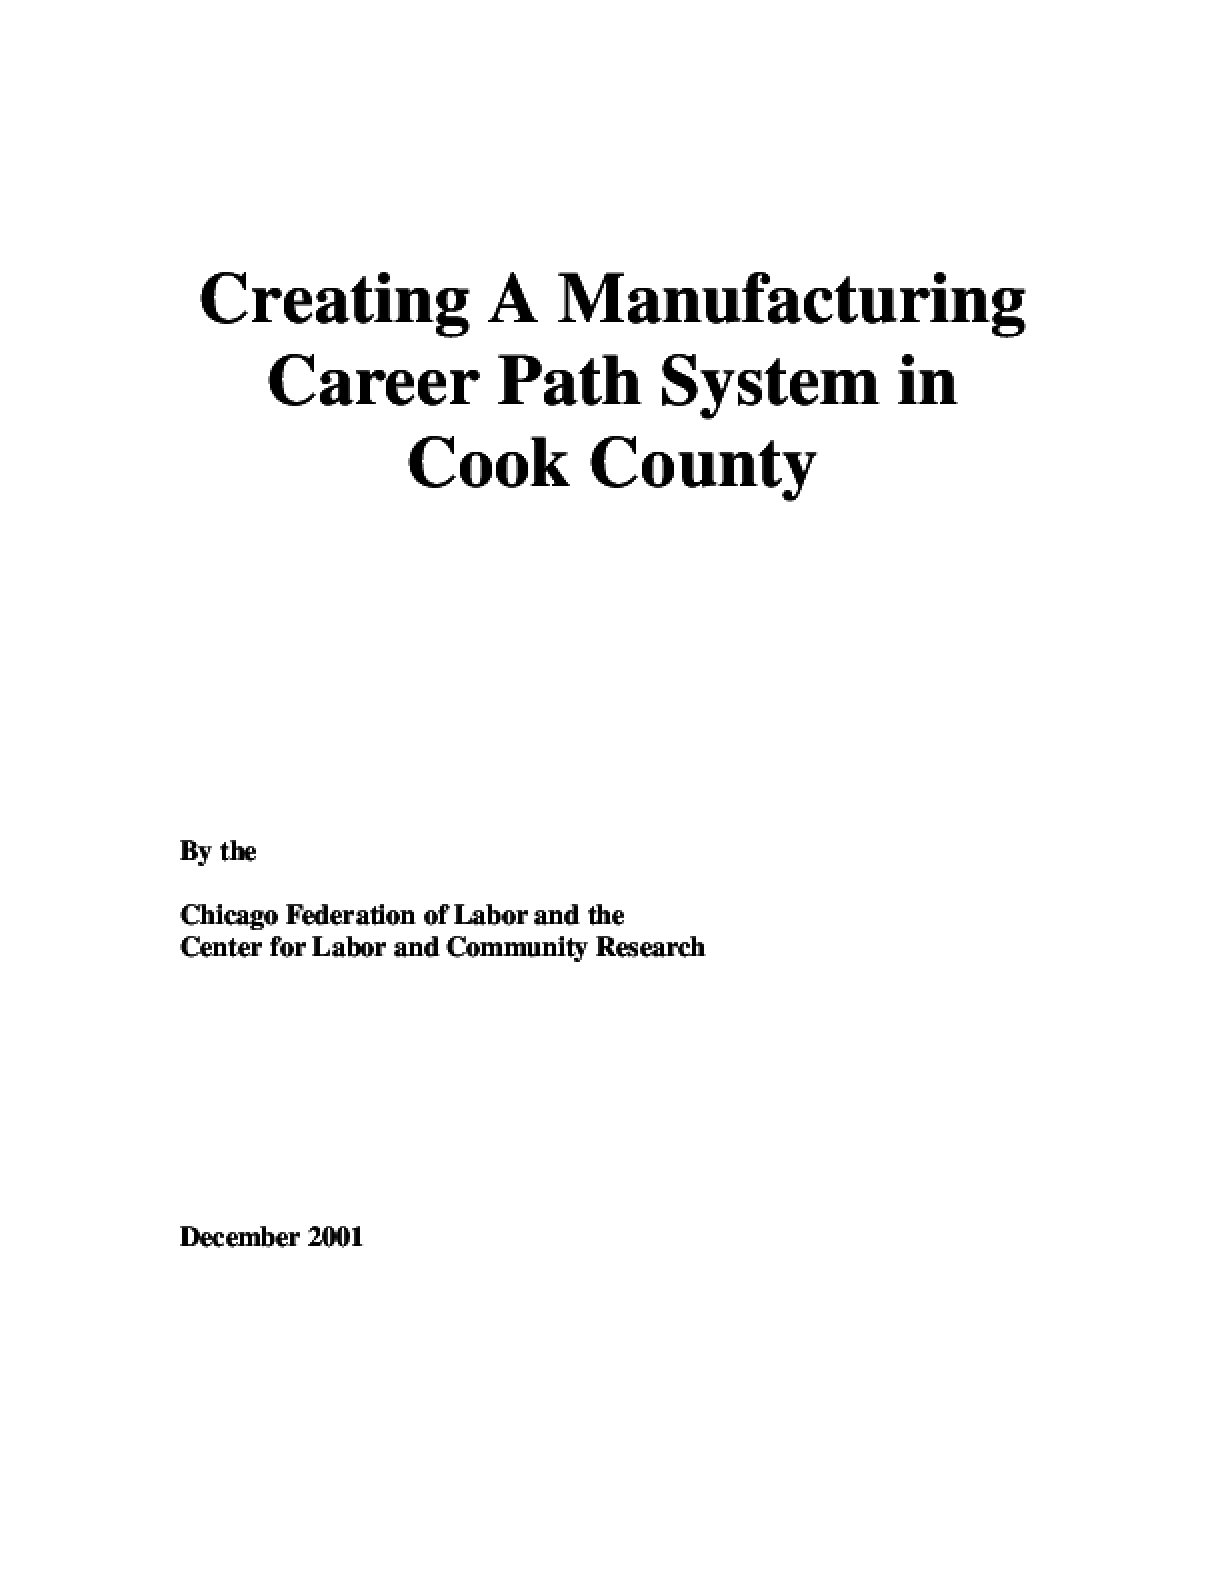 Creating a Manufacturing Career Path System in Cook County